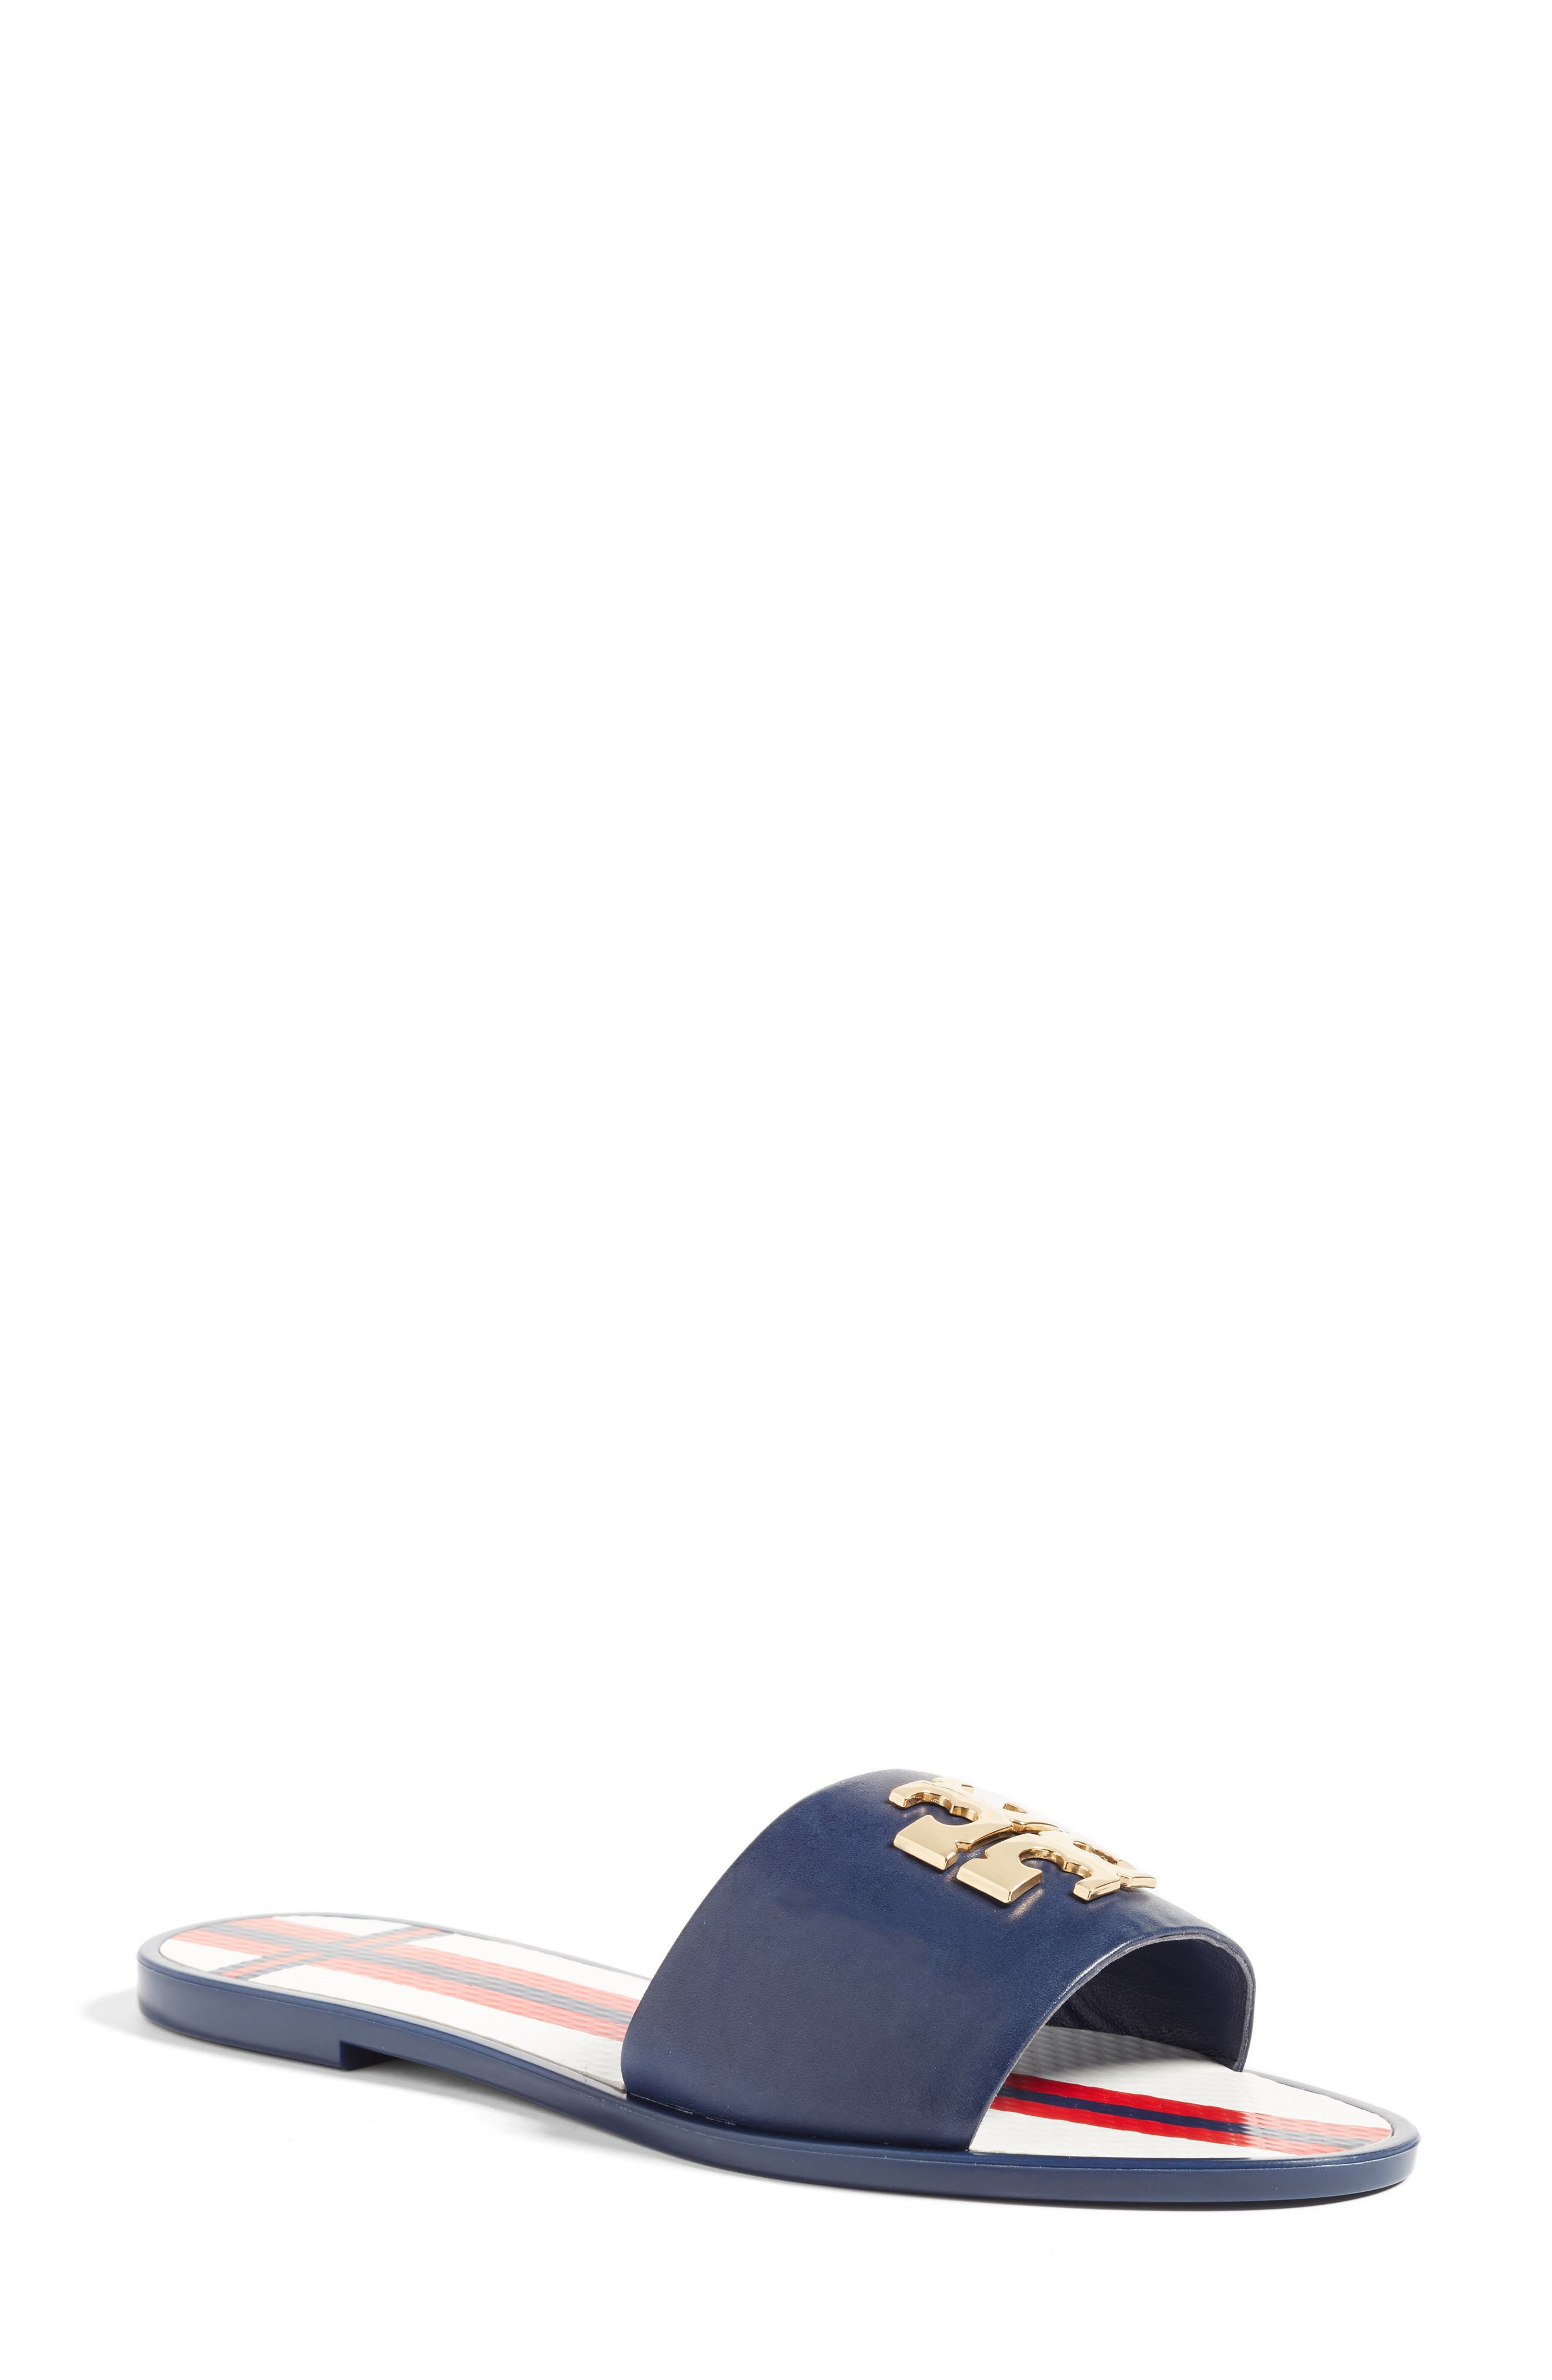 Tory Burch Logo Slide Sandal (Women)